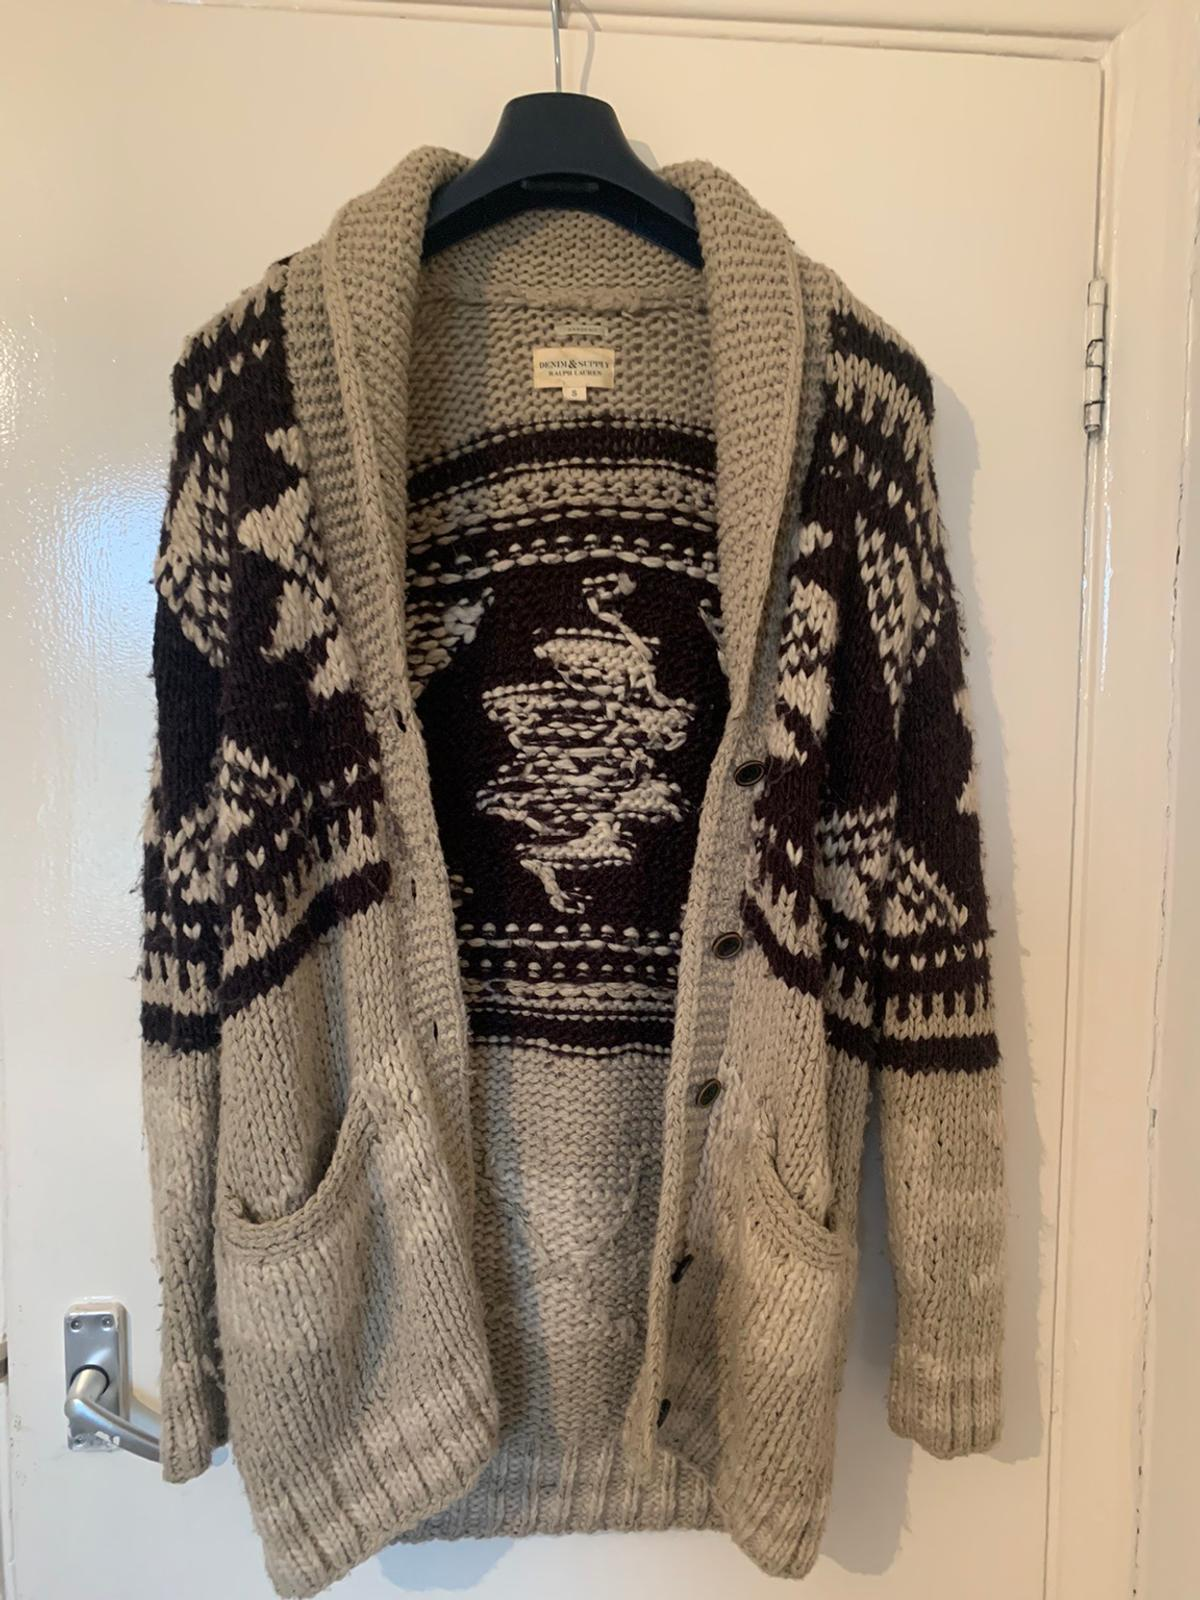 Denim & Supply Aztec cardigan in a size small but more like a medium or large. 100% wool in good condition. #Ralph Lauren#